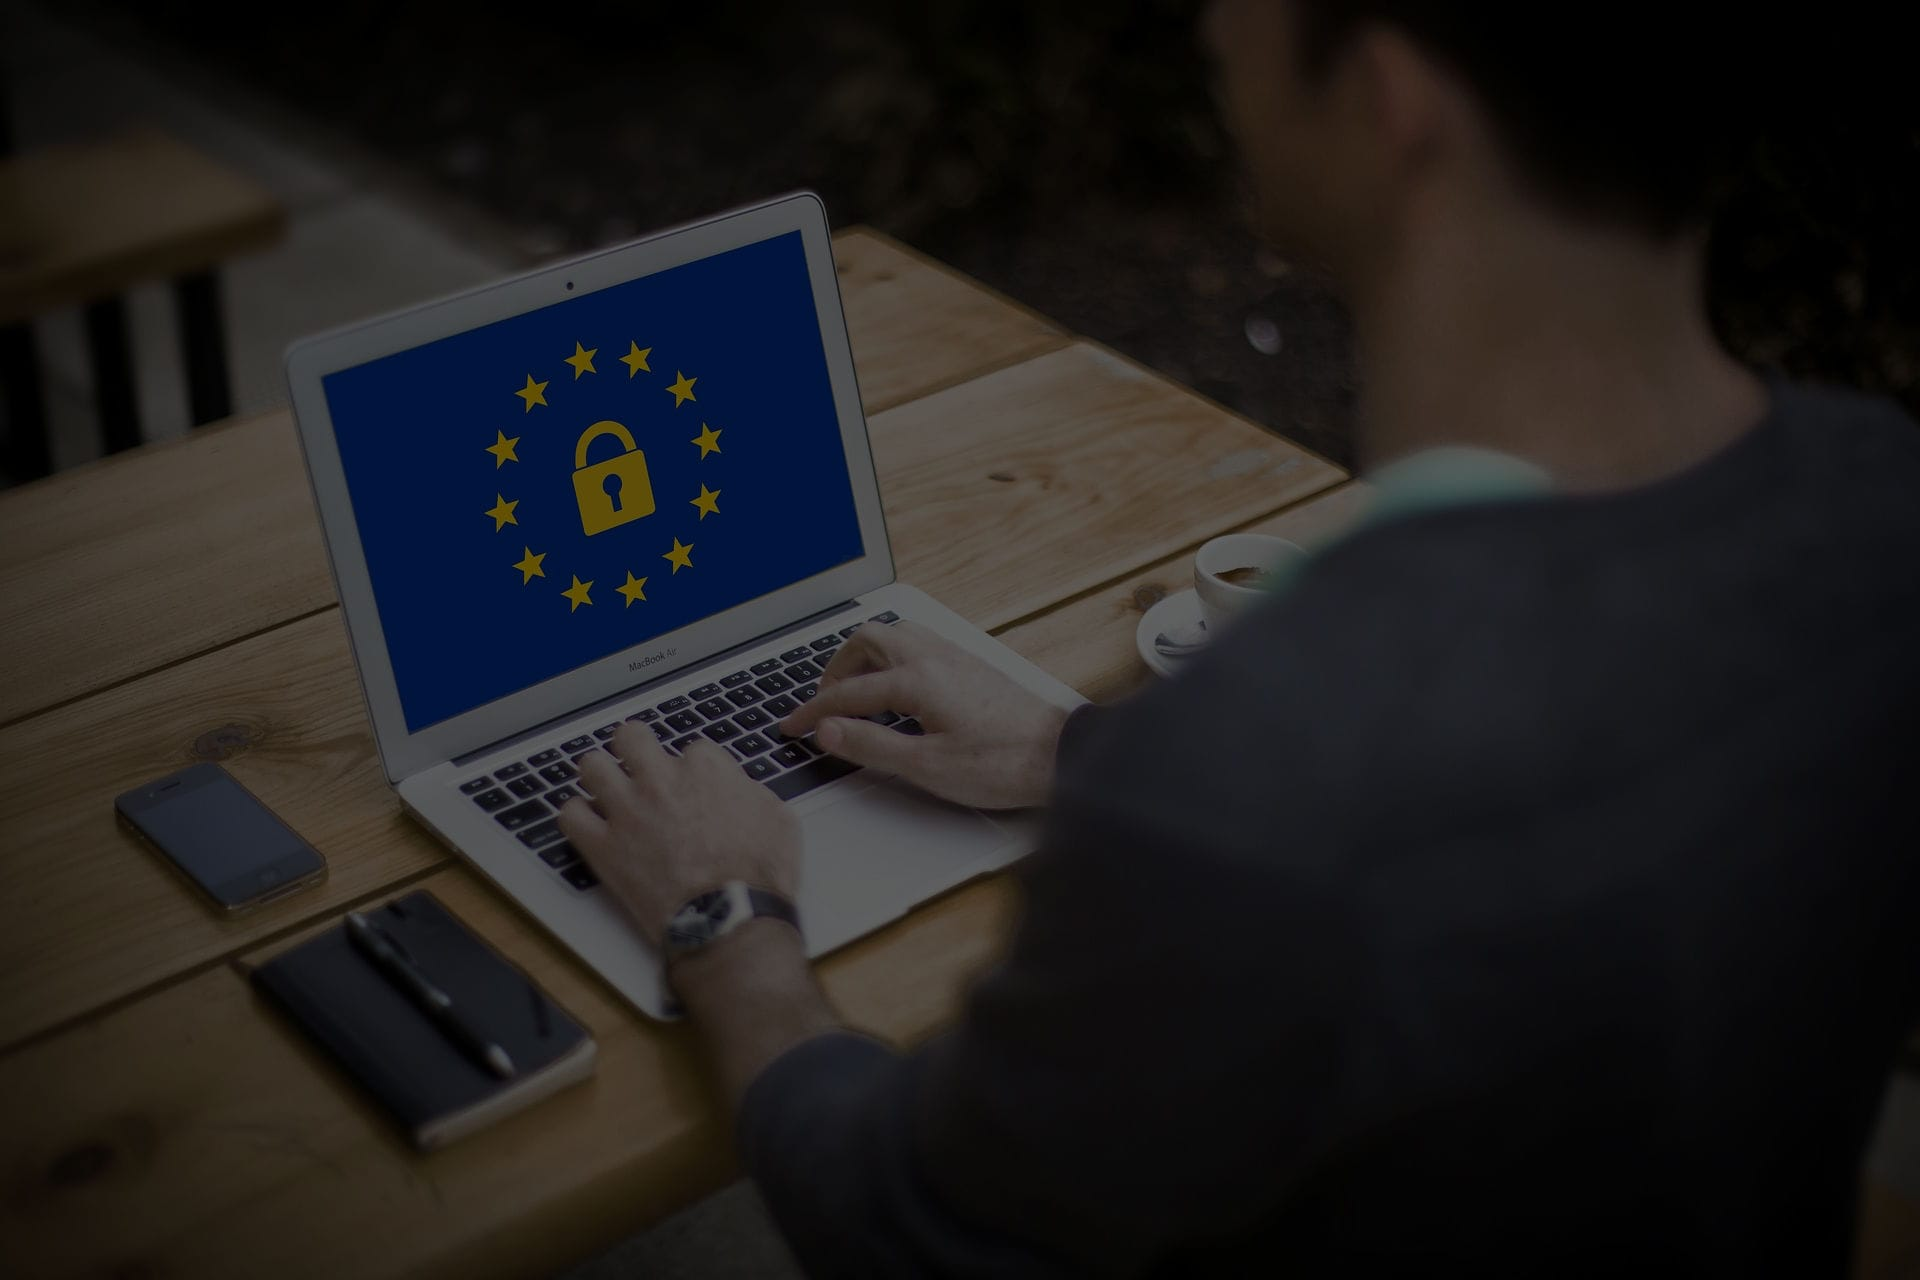 GDPR – What Changed for Business Owners